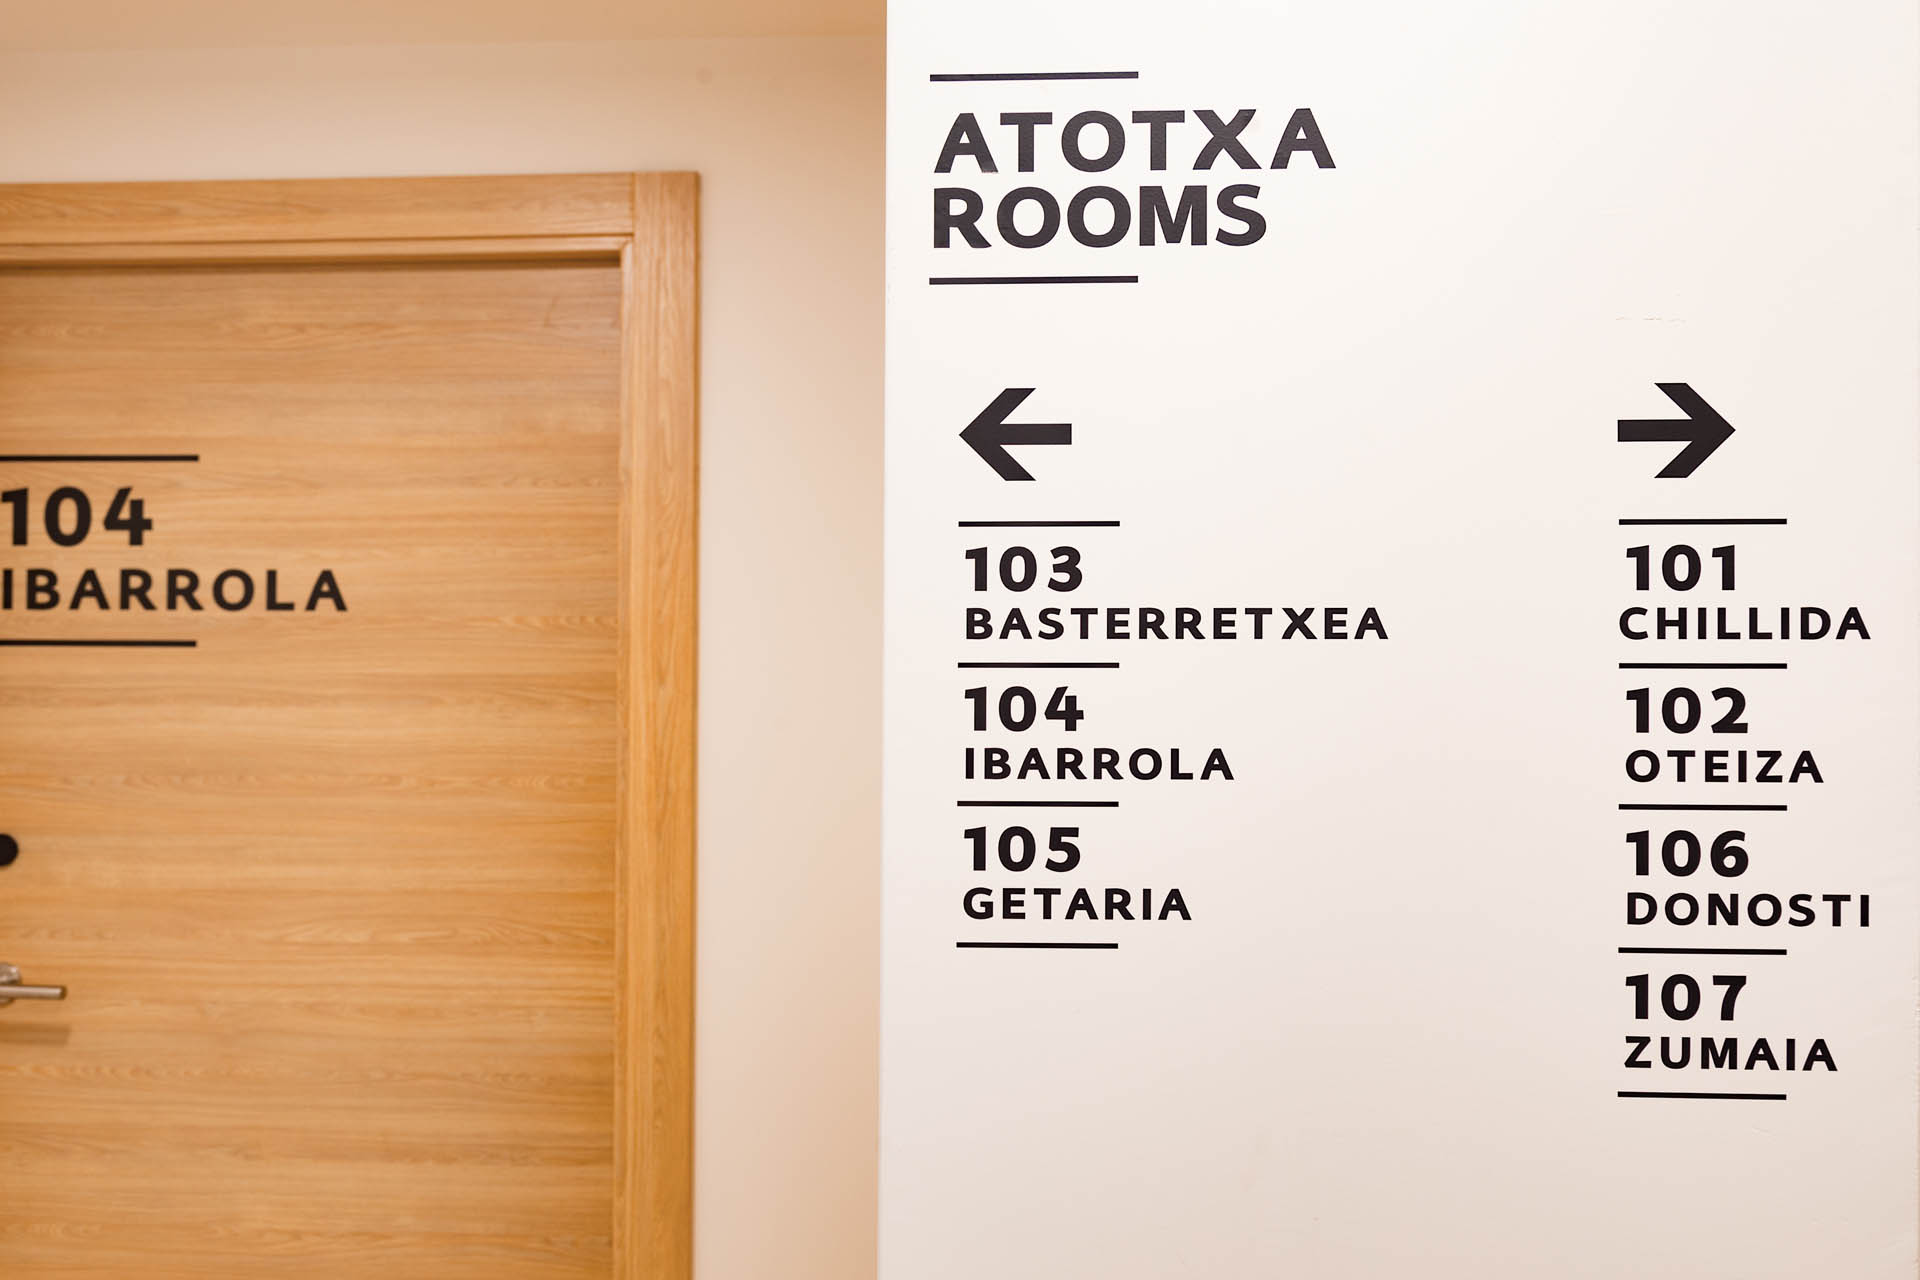 Atotxa Rooms _25